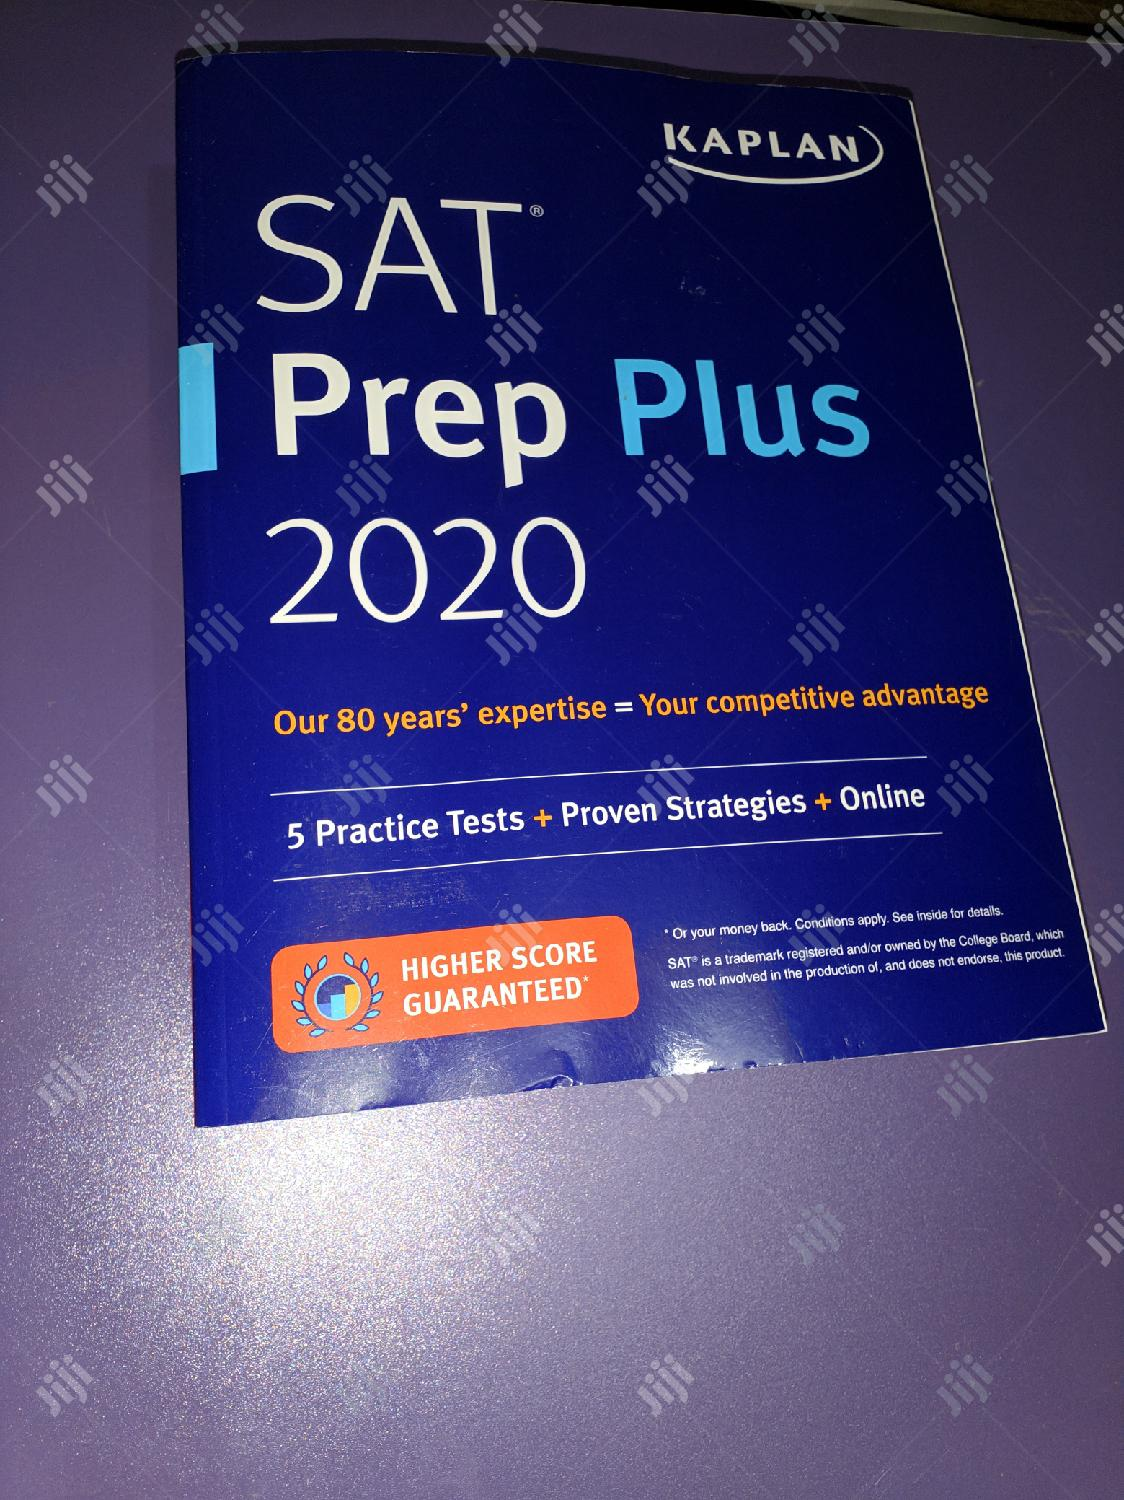 Original 2020 SAT Prep Plus By Kaplan